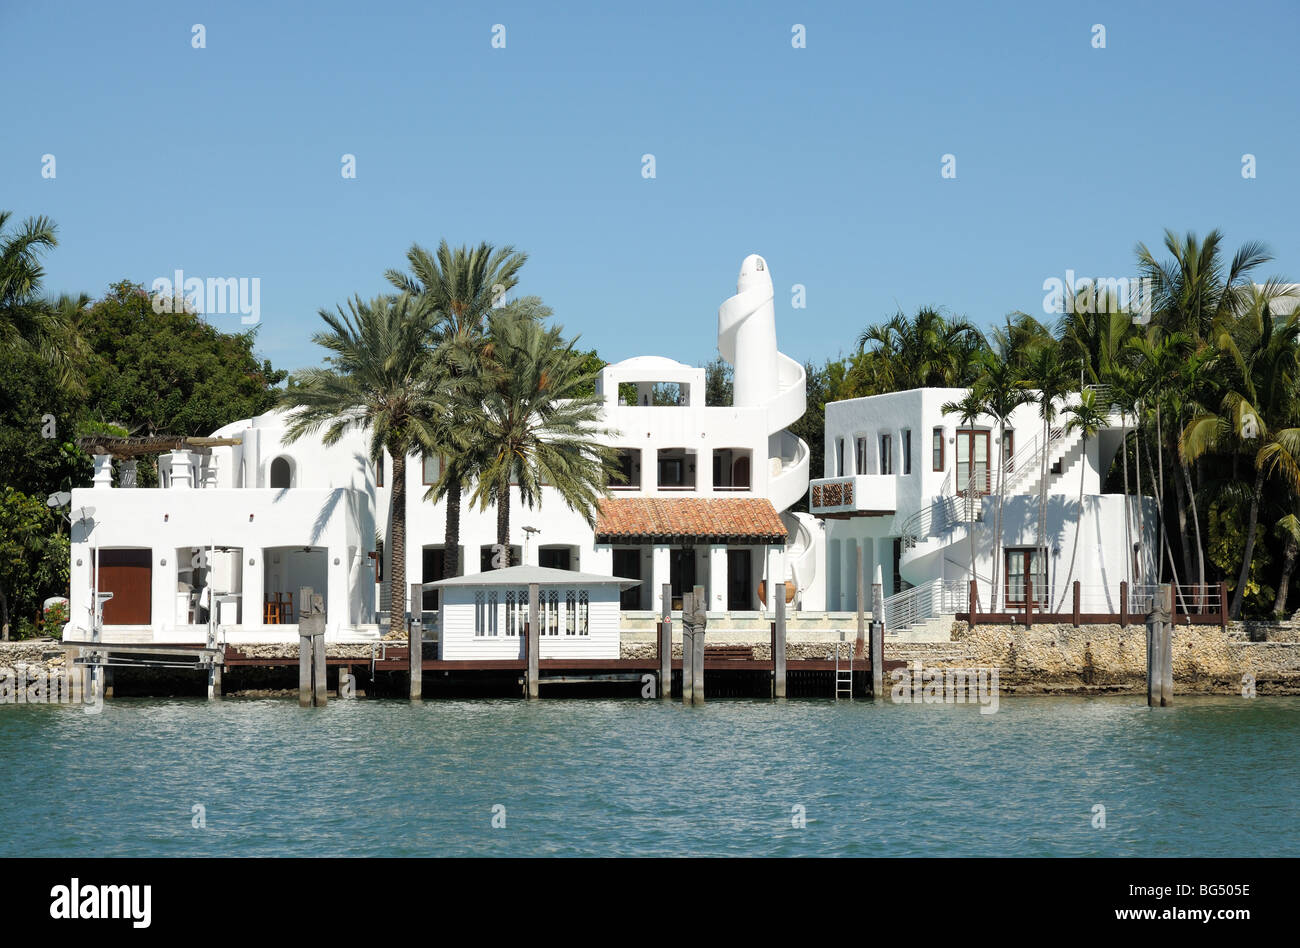 House waterside at the star island miami beach florida for Star island miami houses